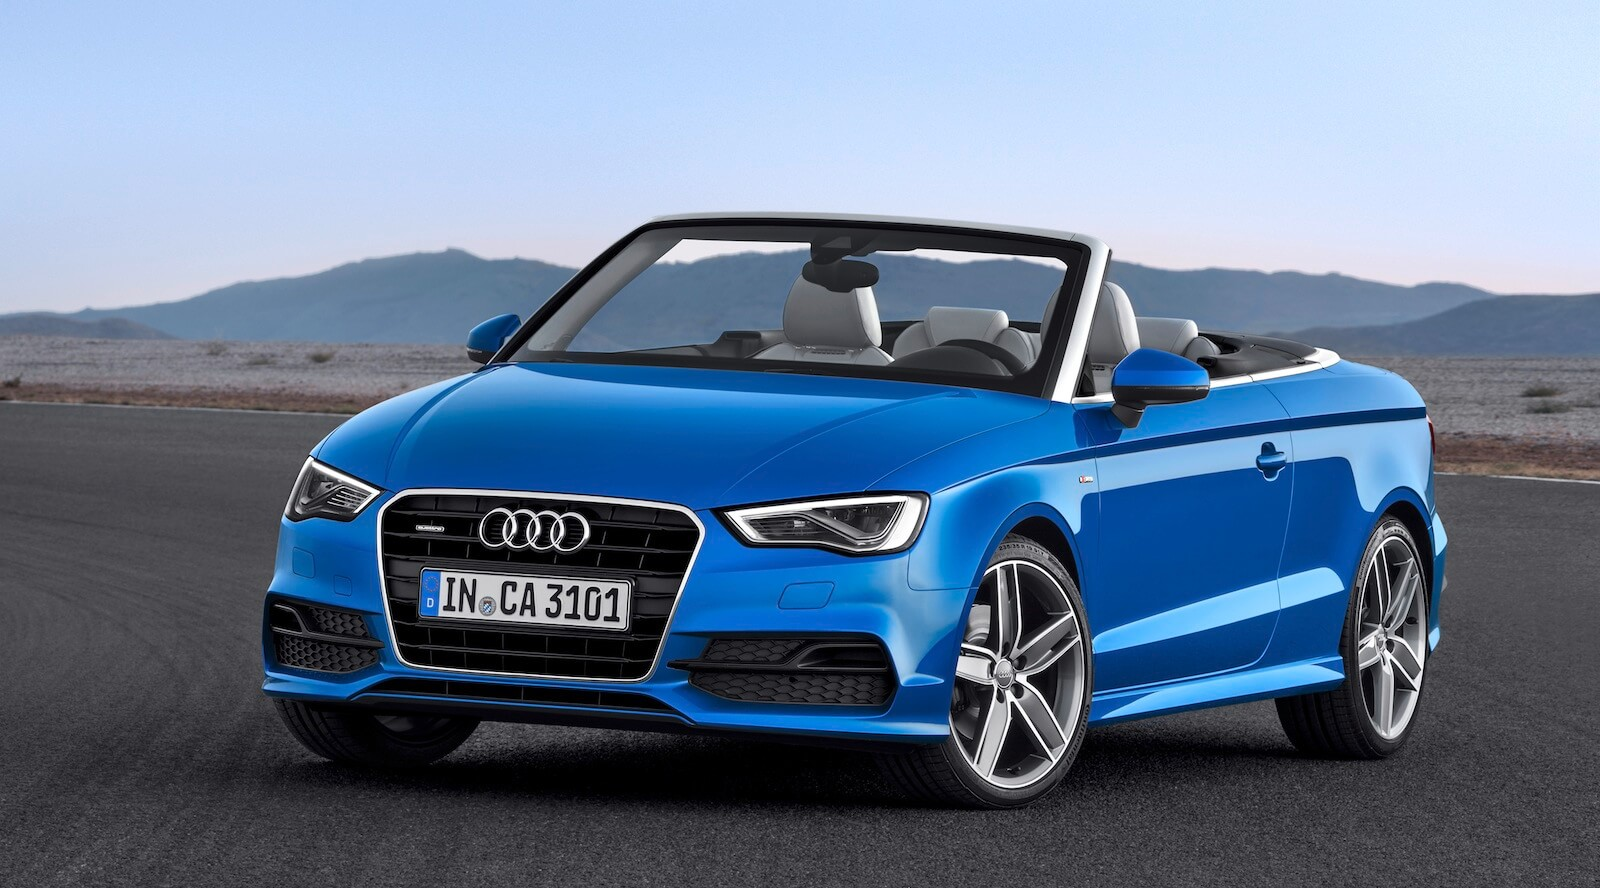 another luxury car audi a3 cabriolet introduced in india at rs. Black Bedroom Furniture Sets. Home Design Ideas